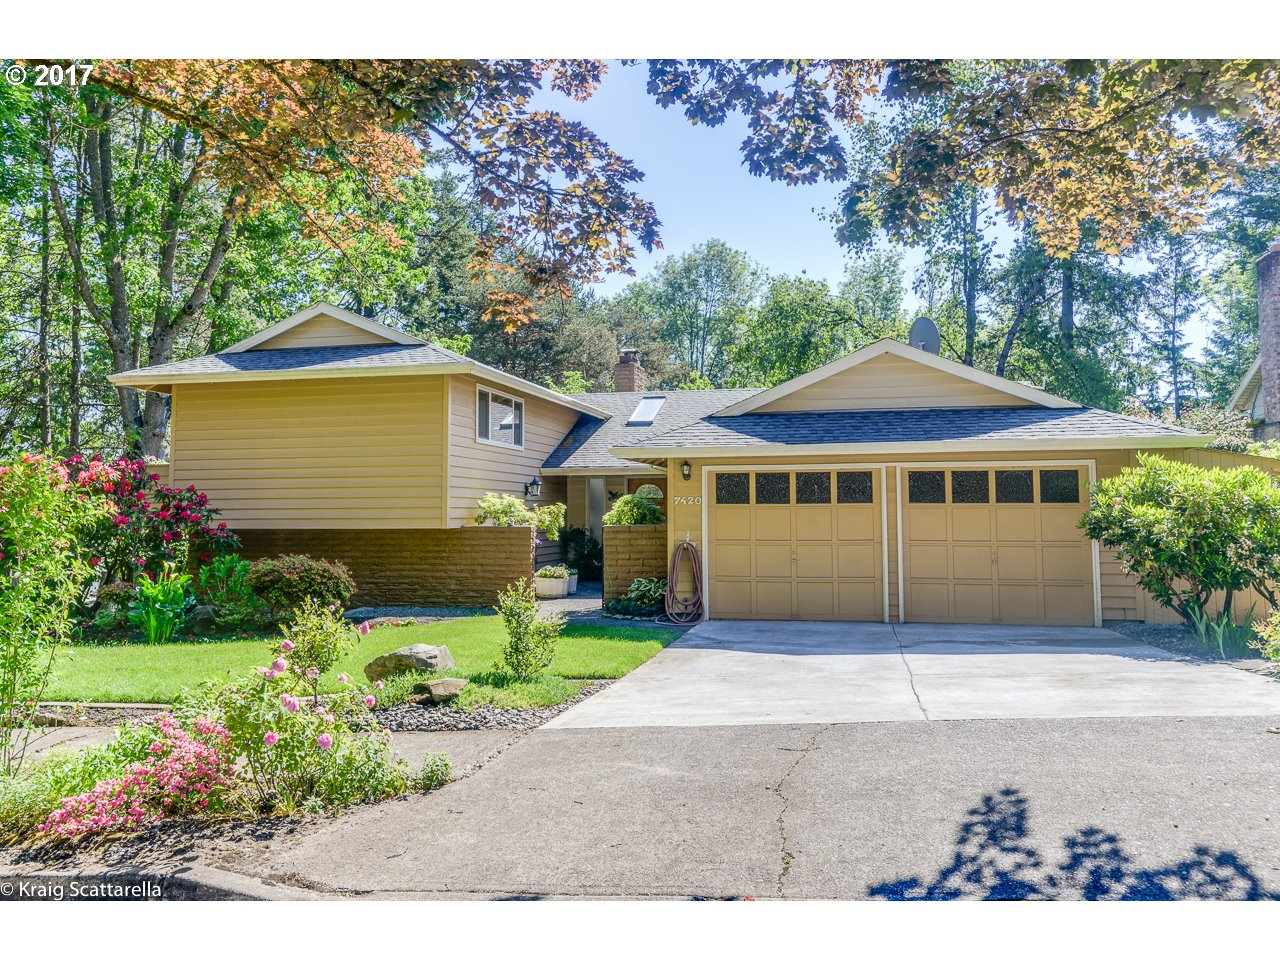 7420 SW HART PL Beaverton, OR 97008 - MLS #: 17581307